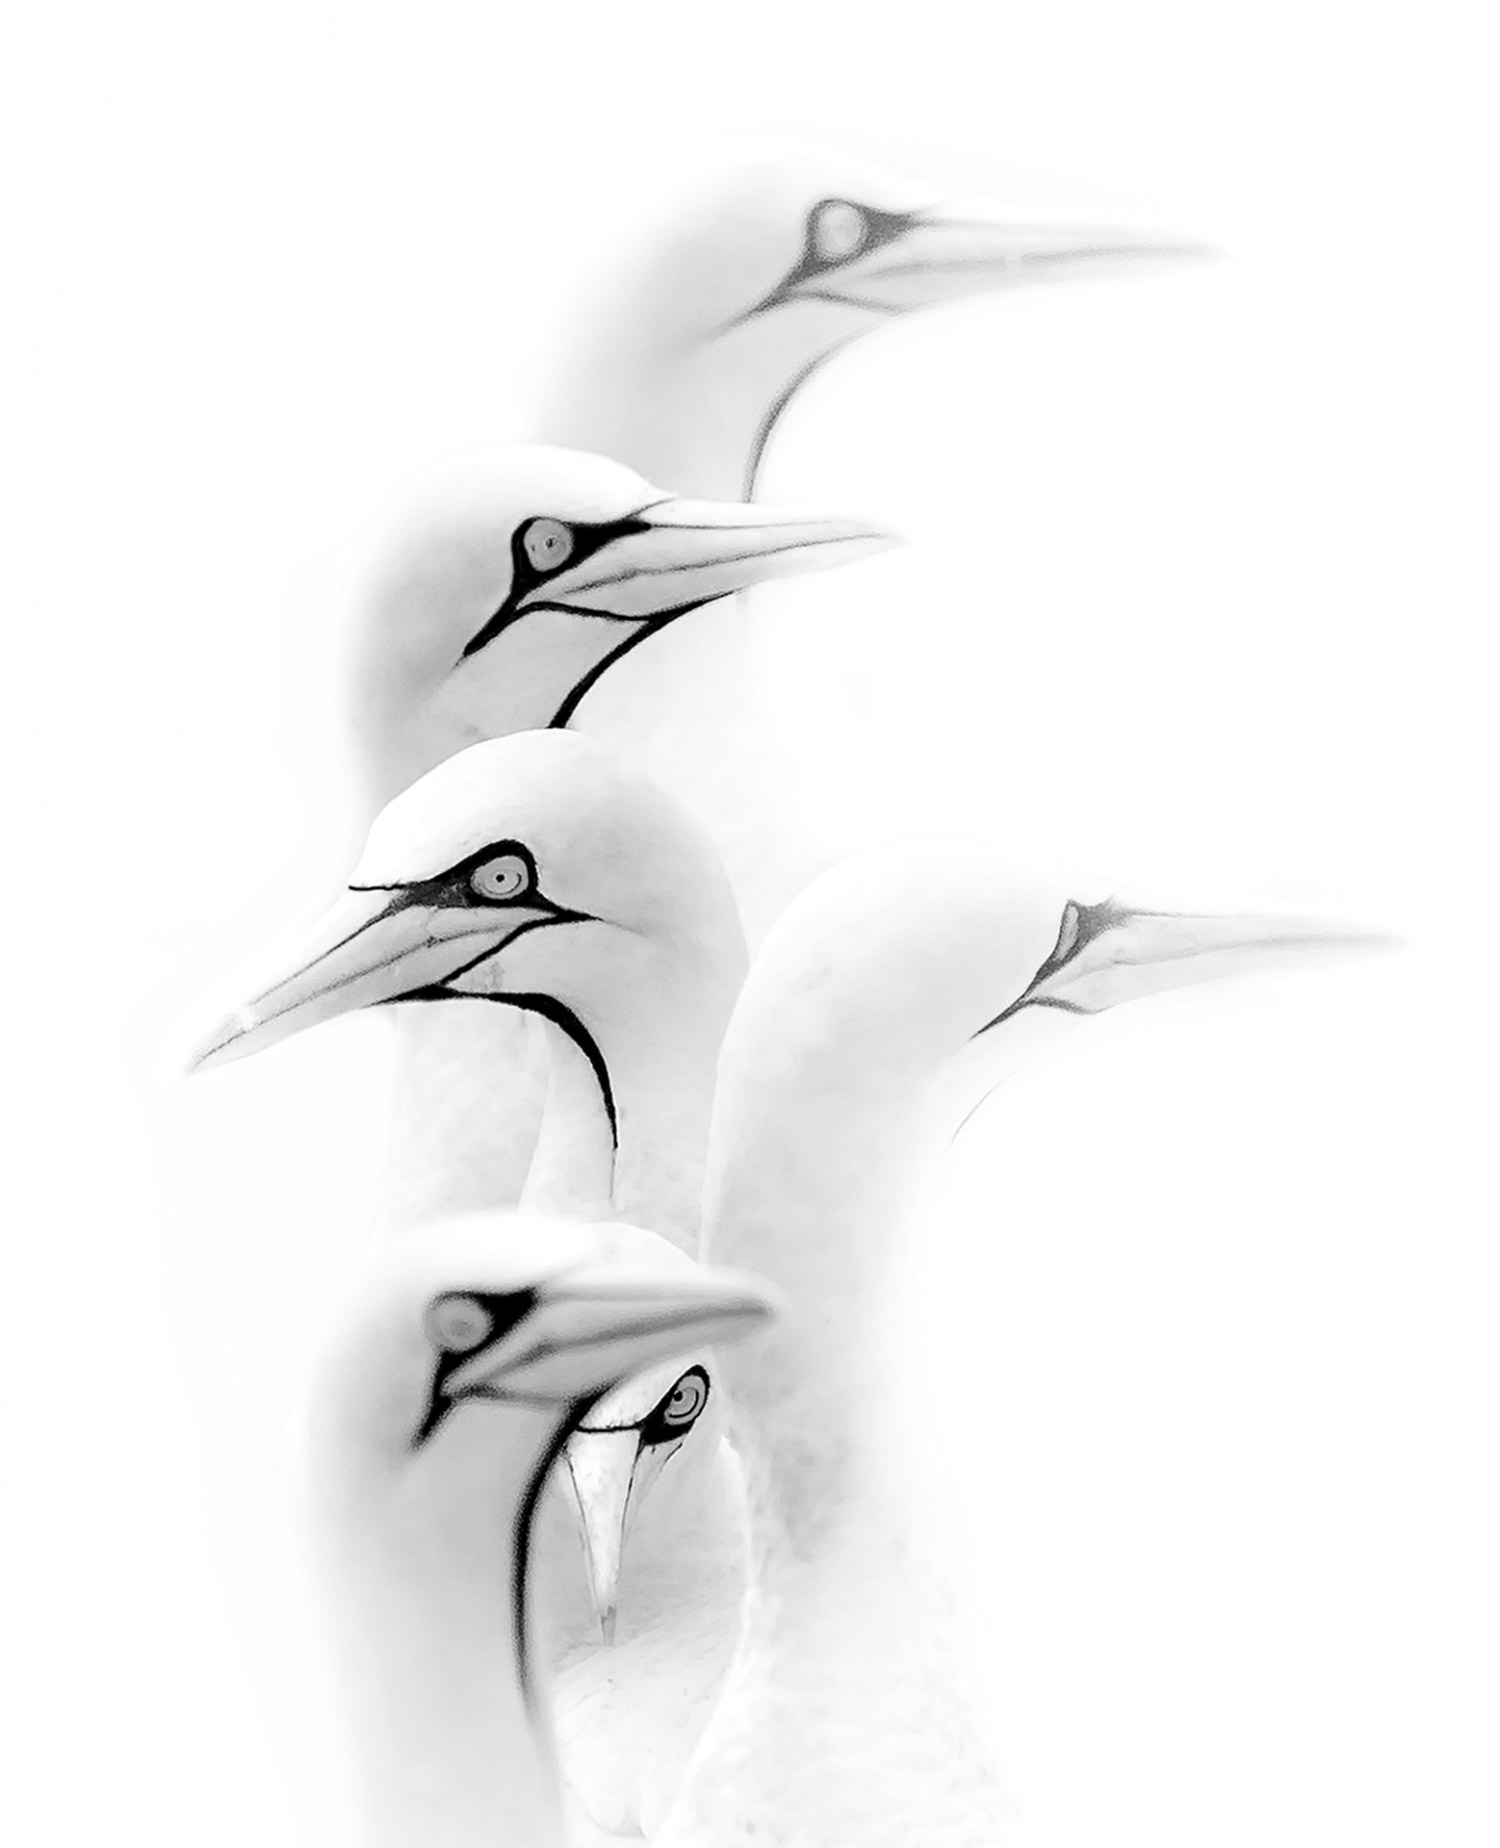 Gannets in the mist, © Prelena SOMA OWEN, 1st Place, Non-Professional - Abstract and Contemporary, Zebra Awards - TZIPAC Black and White Photographer of the Year